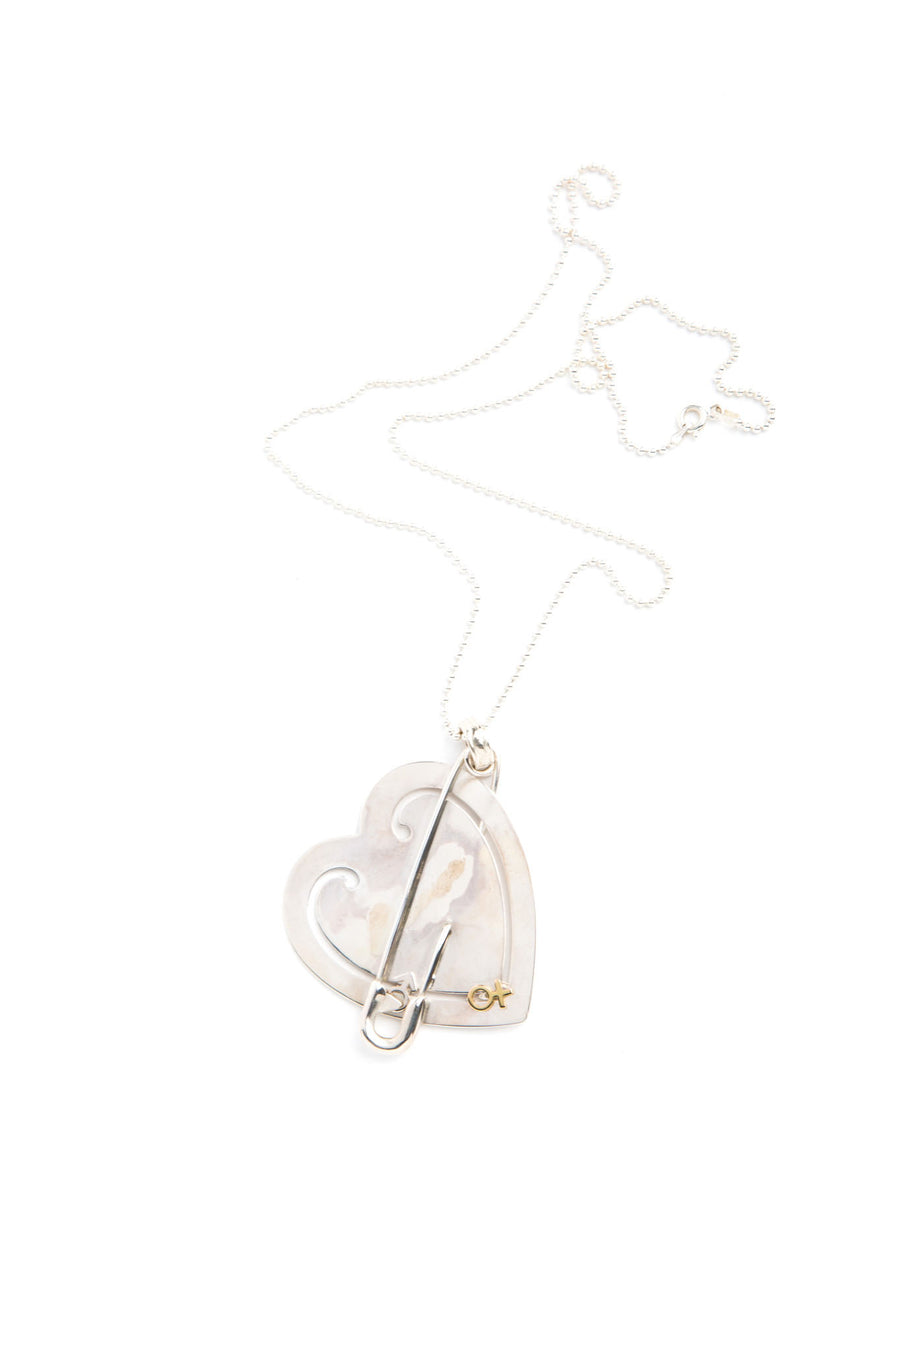 Tiffany & Co. 18K Gold and Sterling Silver Heart Gender Necklace